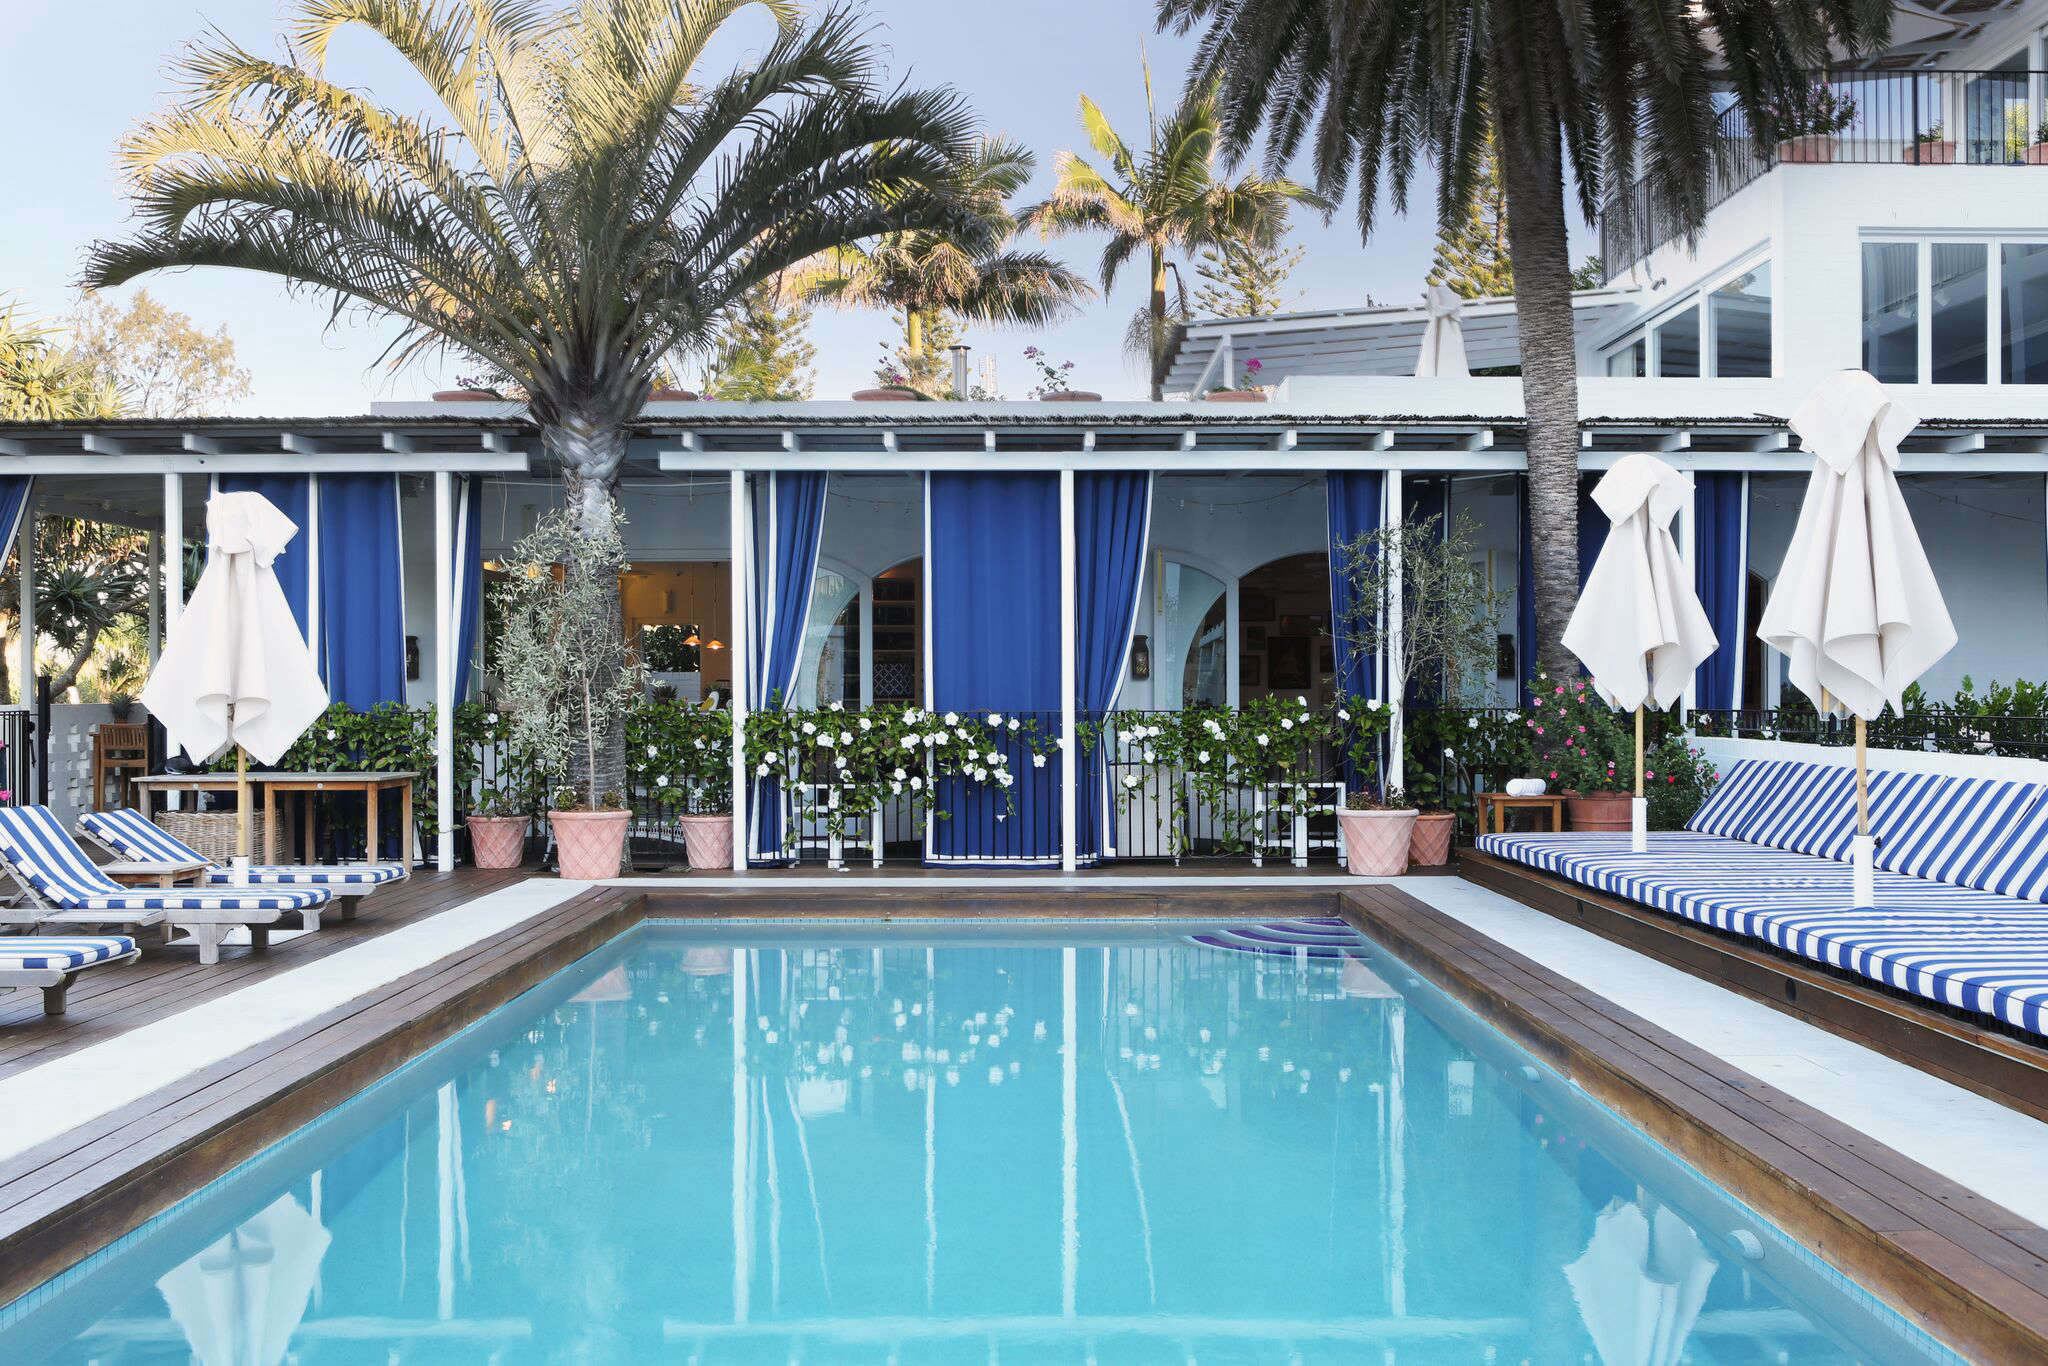 The pool at Halcyon House, a boutique hotel in Cabarita Beach, Australia, Rhiannon Taylor photo | Remodelista